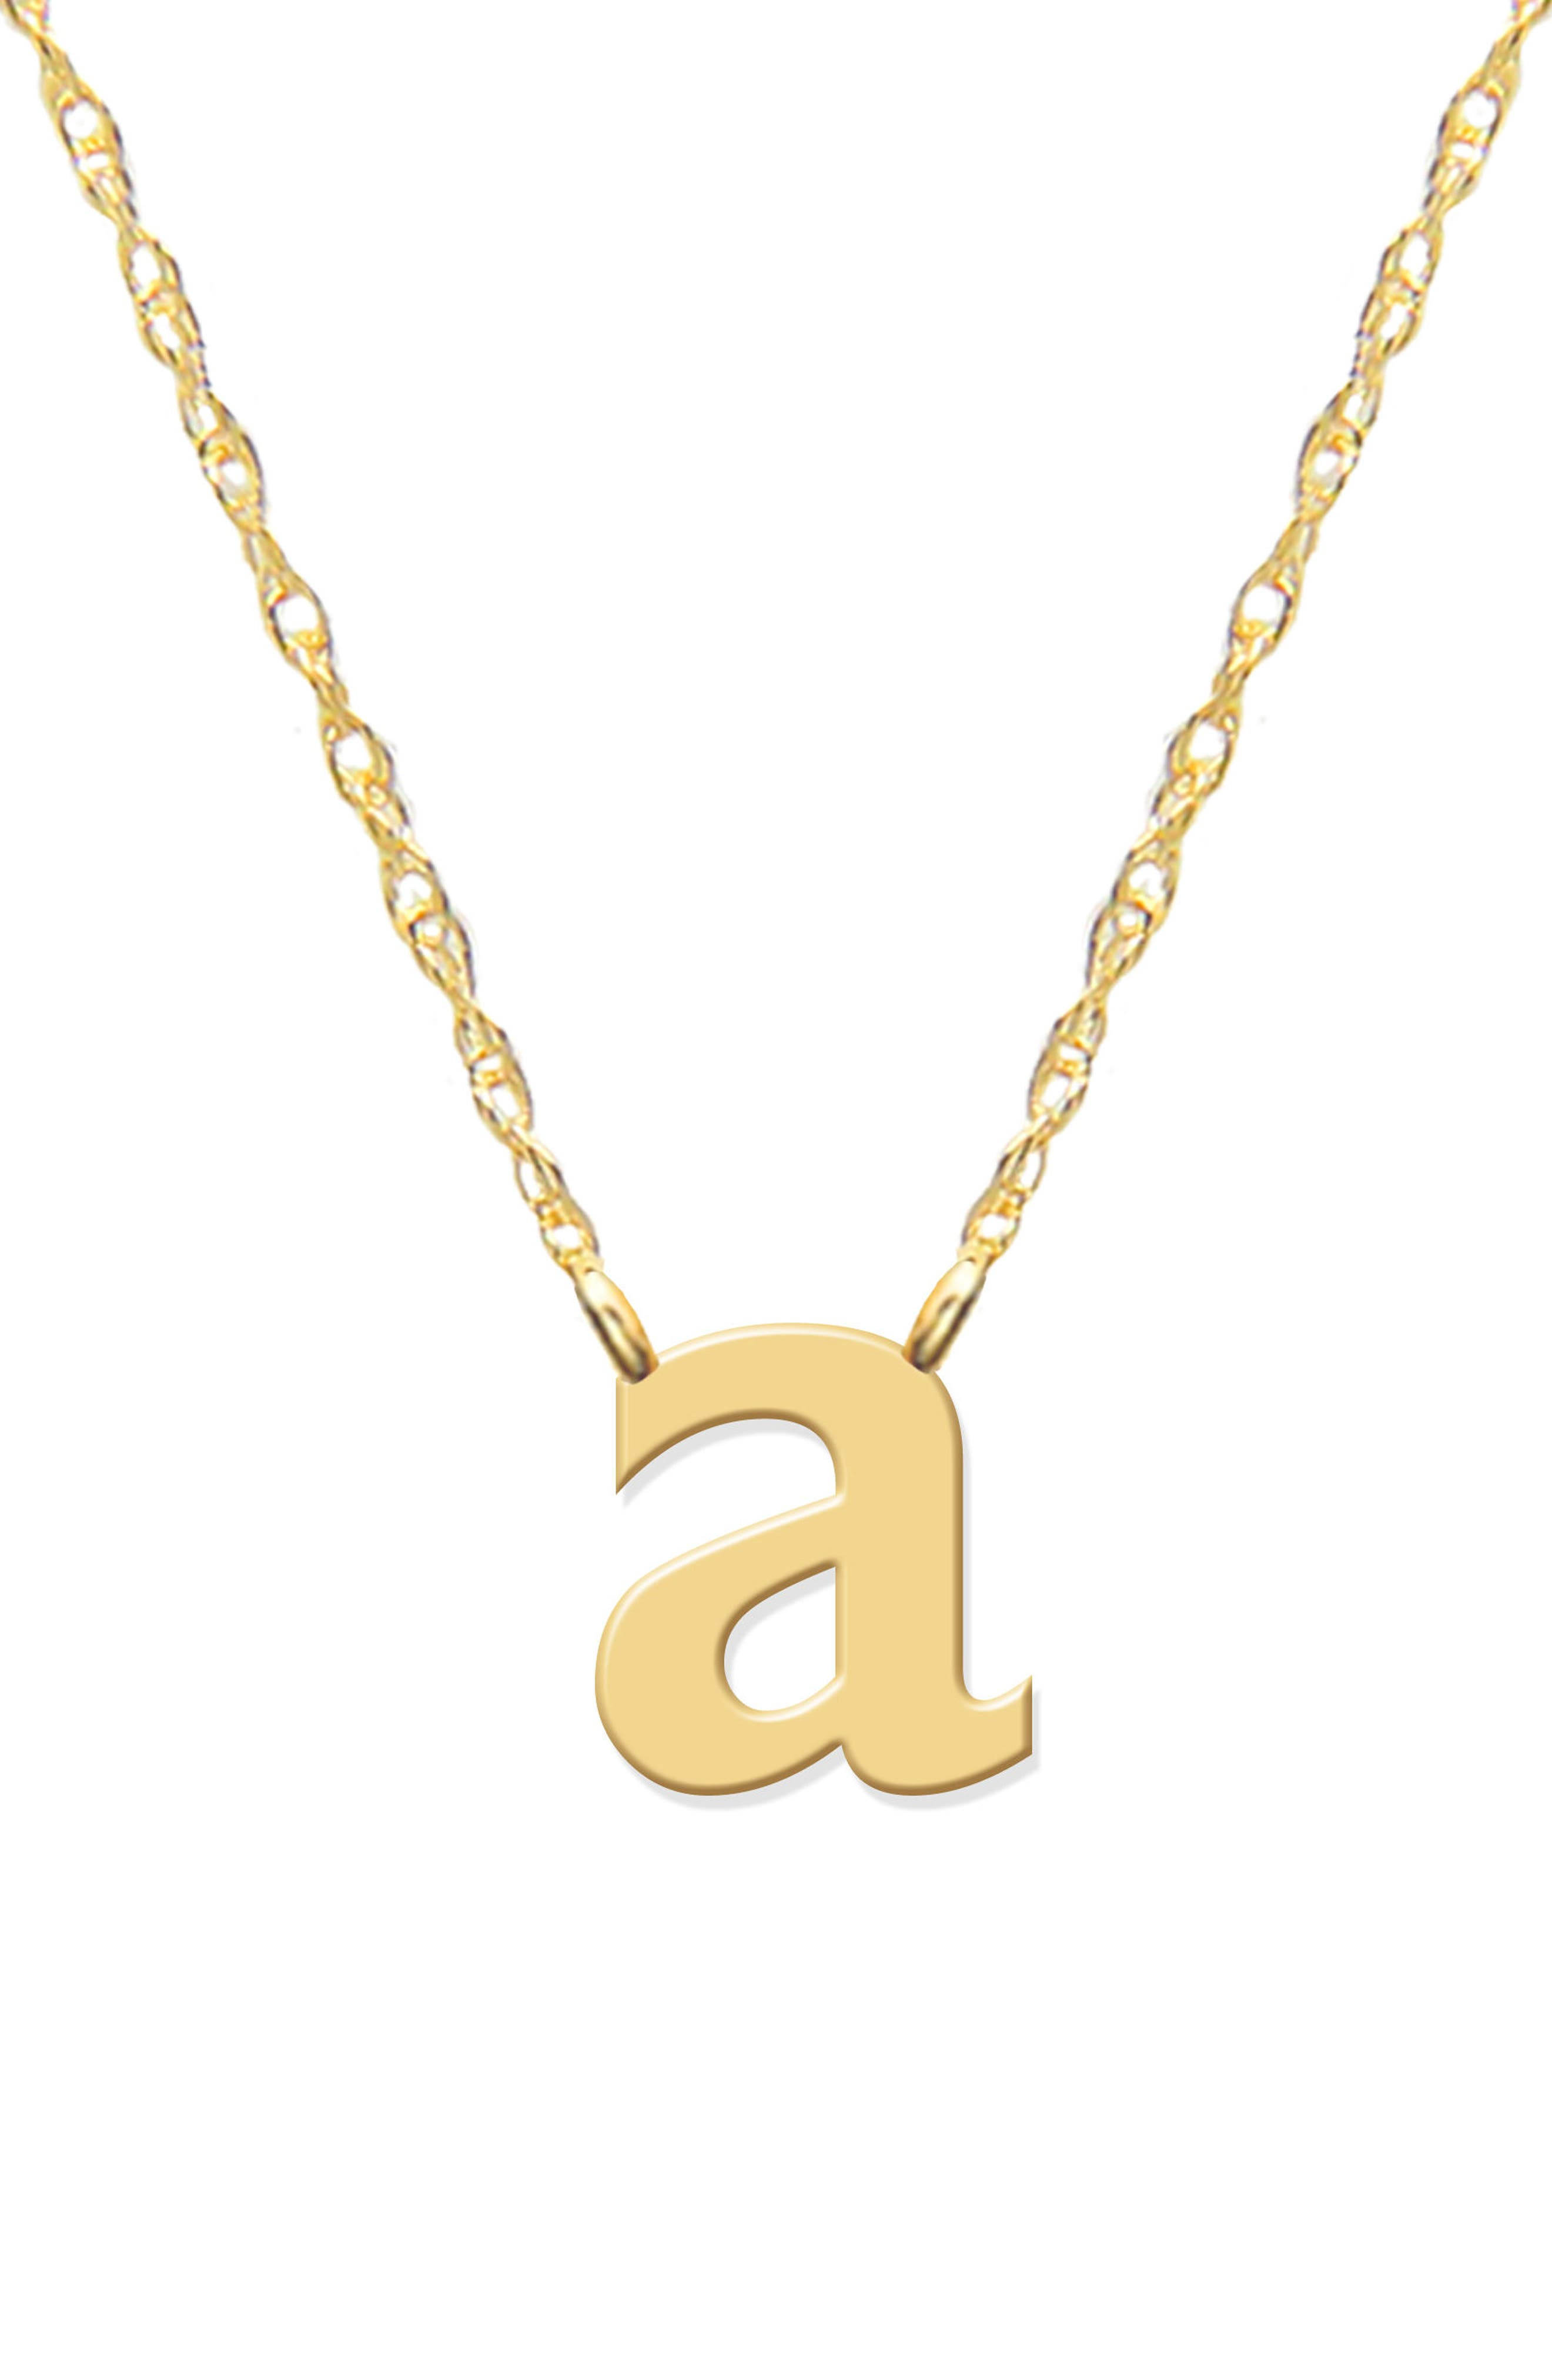 Alternate Image 1 Selected - Jane Basch Designs Lowercase Initial Pendant Necklace